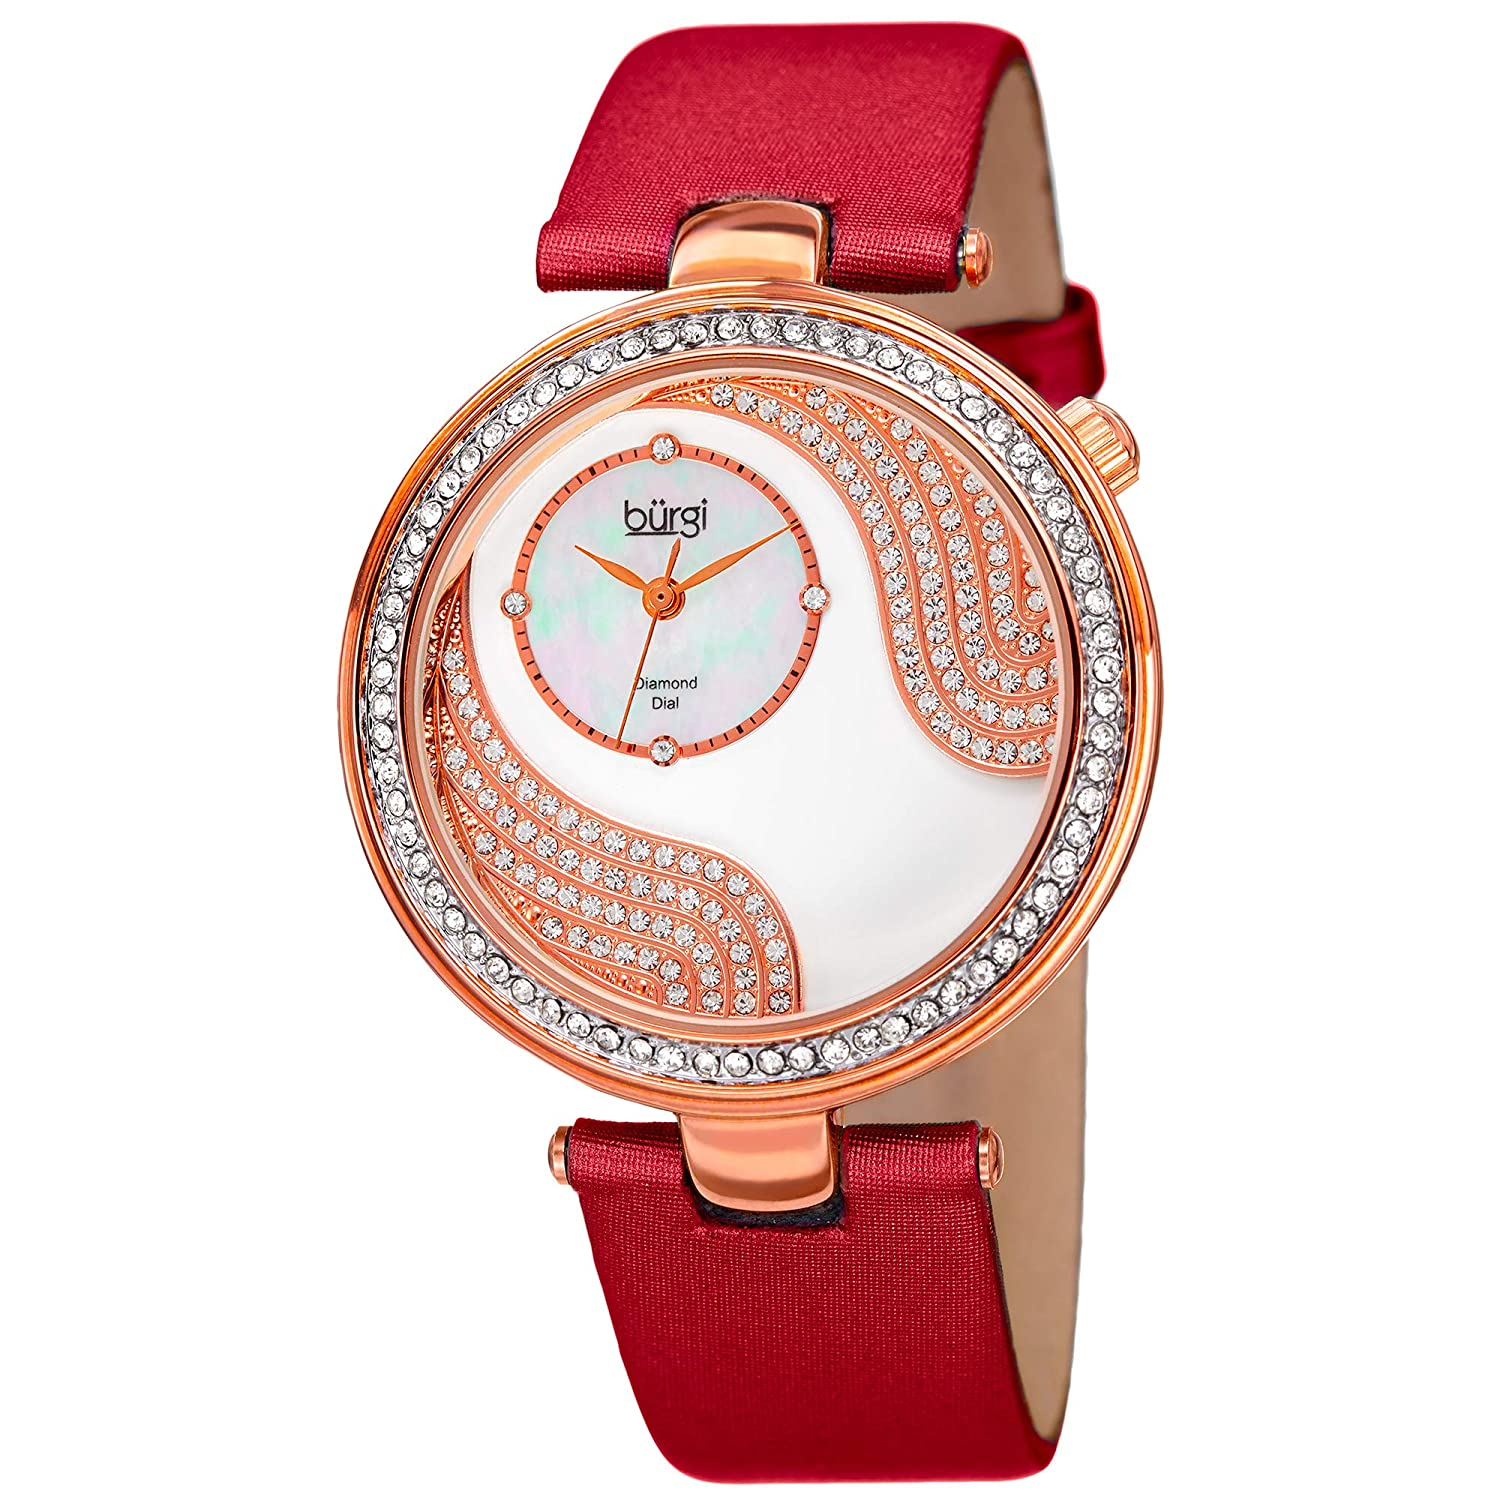 Burgi Unique Crystal Pave Design Women s Watch – Mother-of-Pearl and Sparkling Crystal Dial and Case on Genuine Leather Strap – BUR155